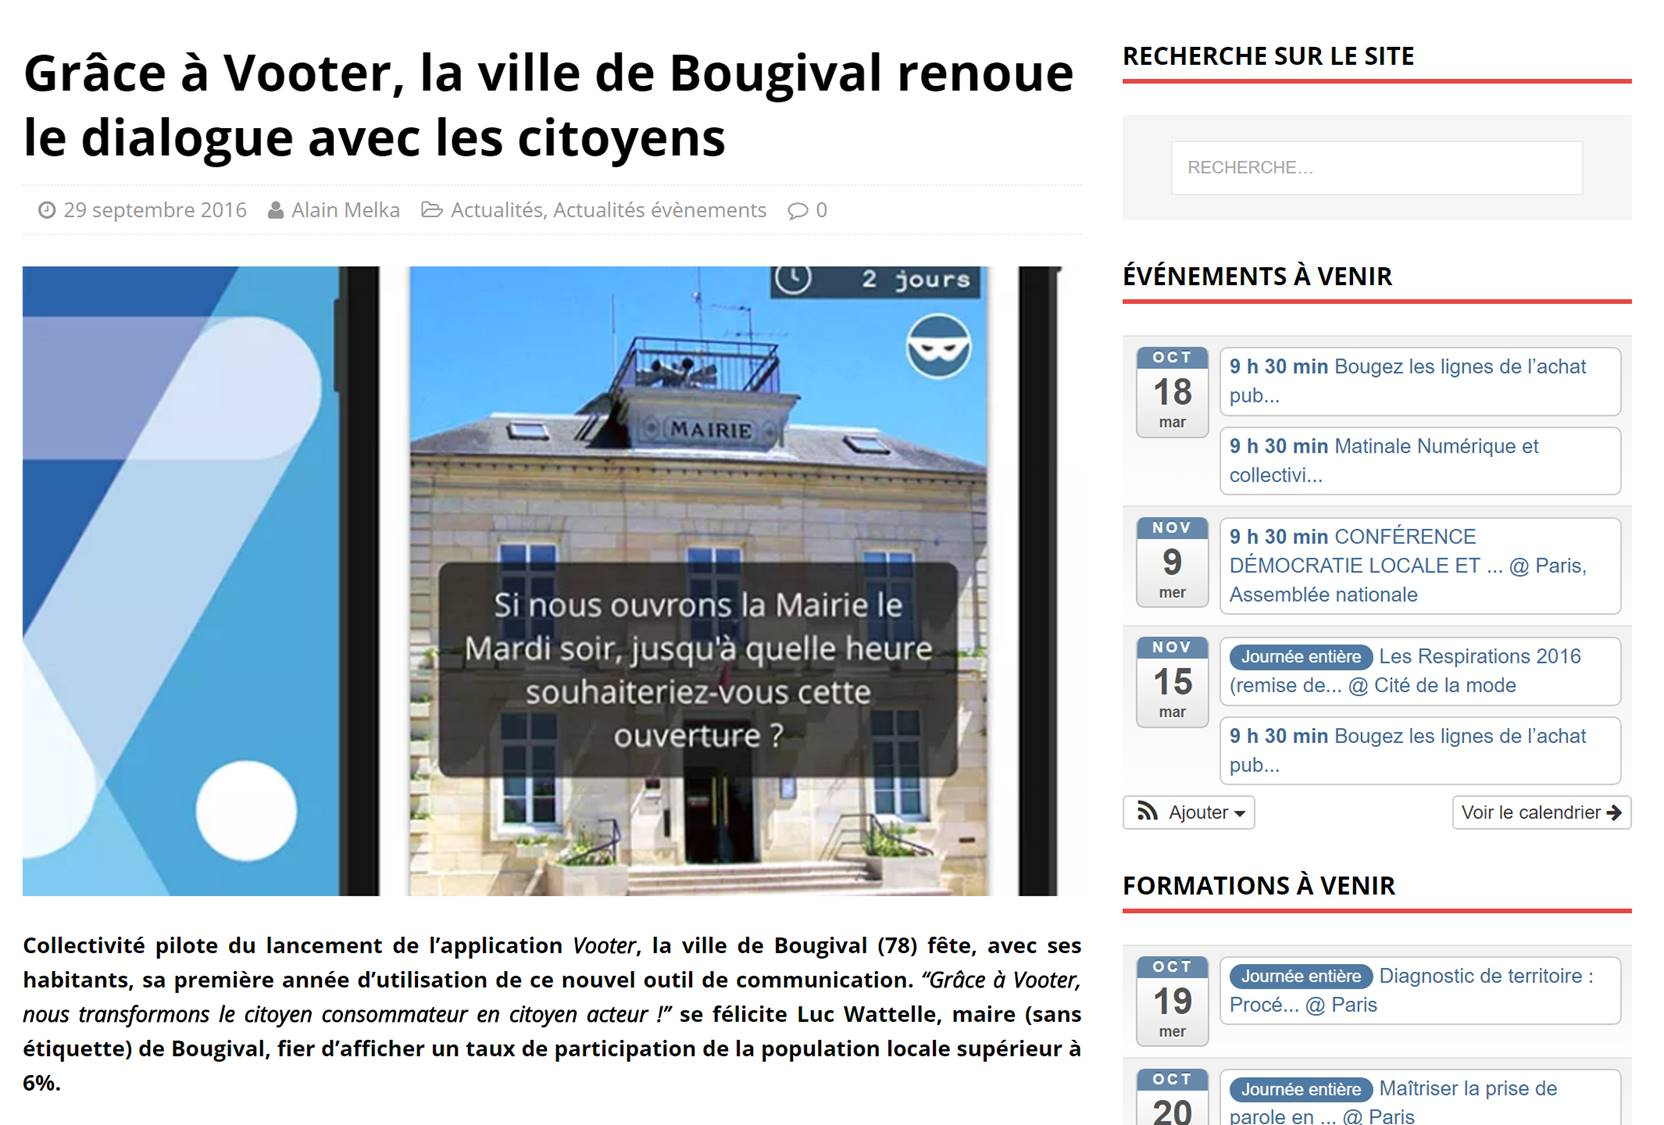 vooter-a-bougival